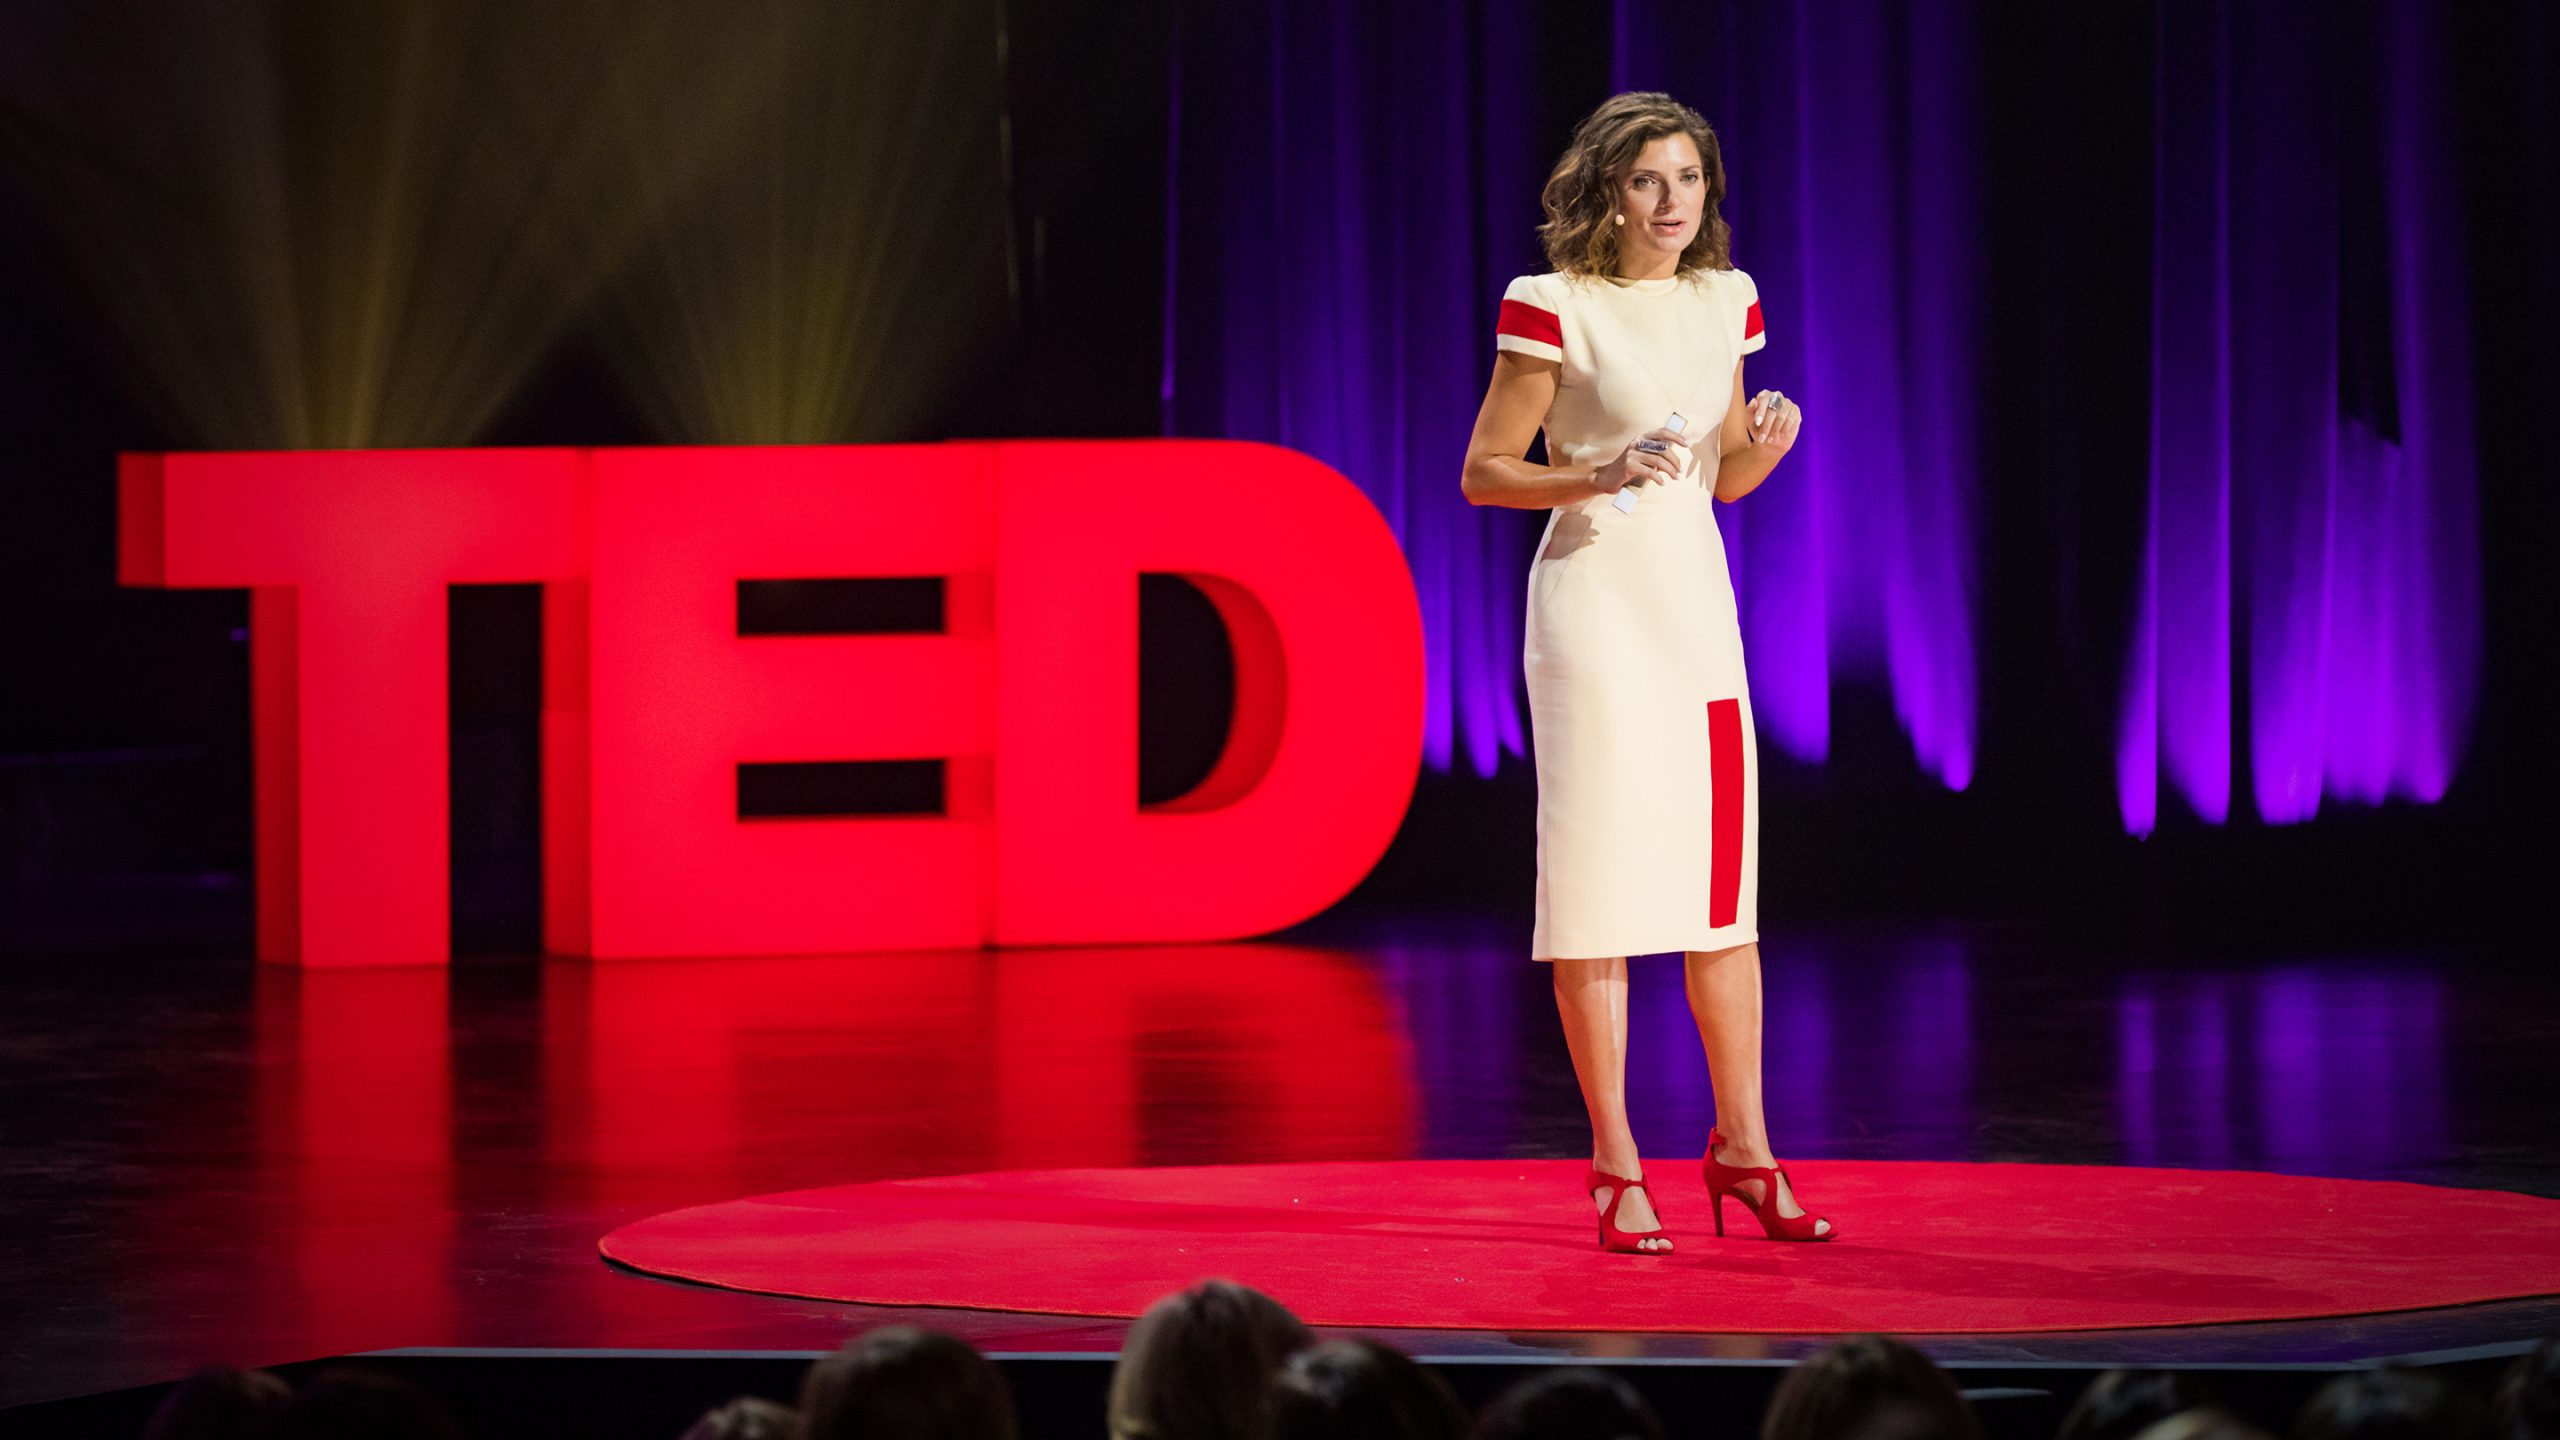 List of Top 10 TED Talks that are worth more than an MBA